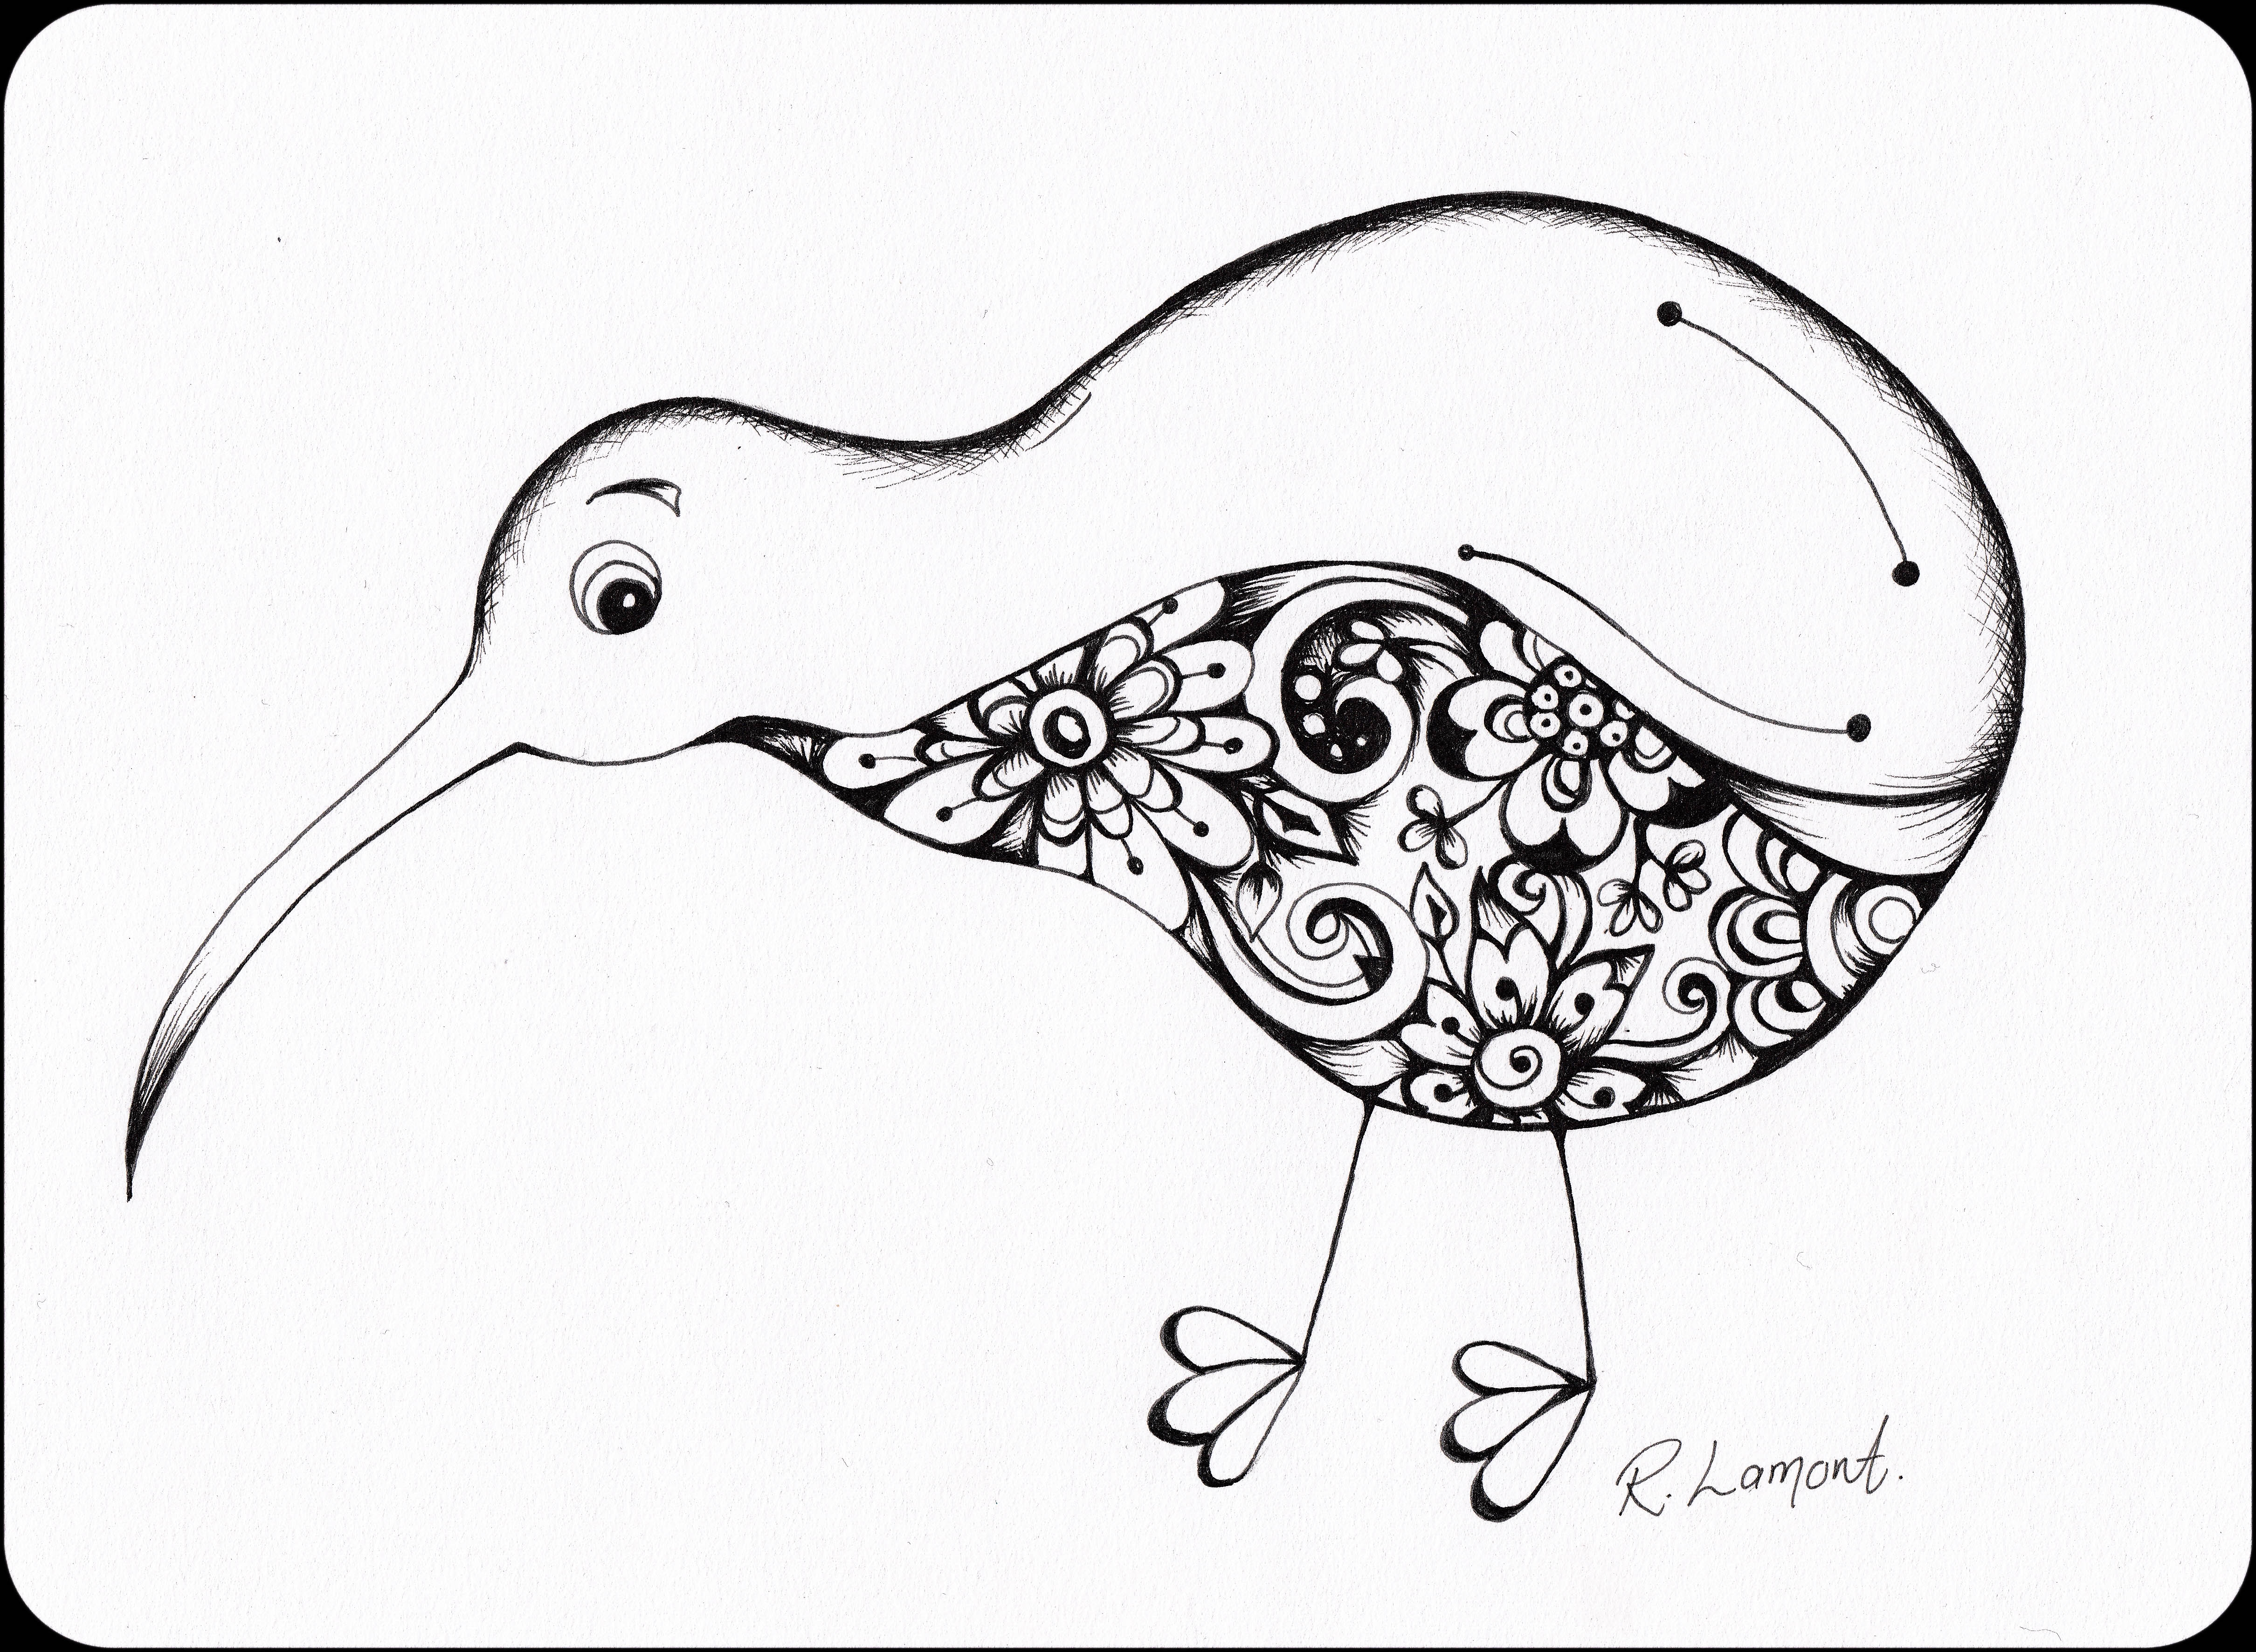 Kiwi 2 Illustration in ink